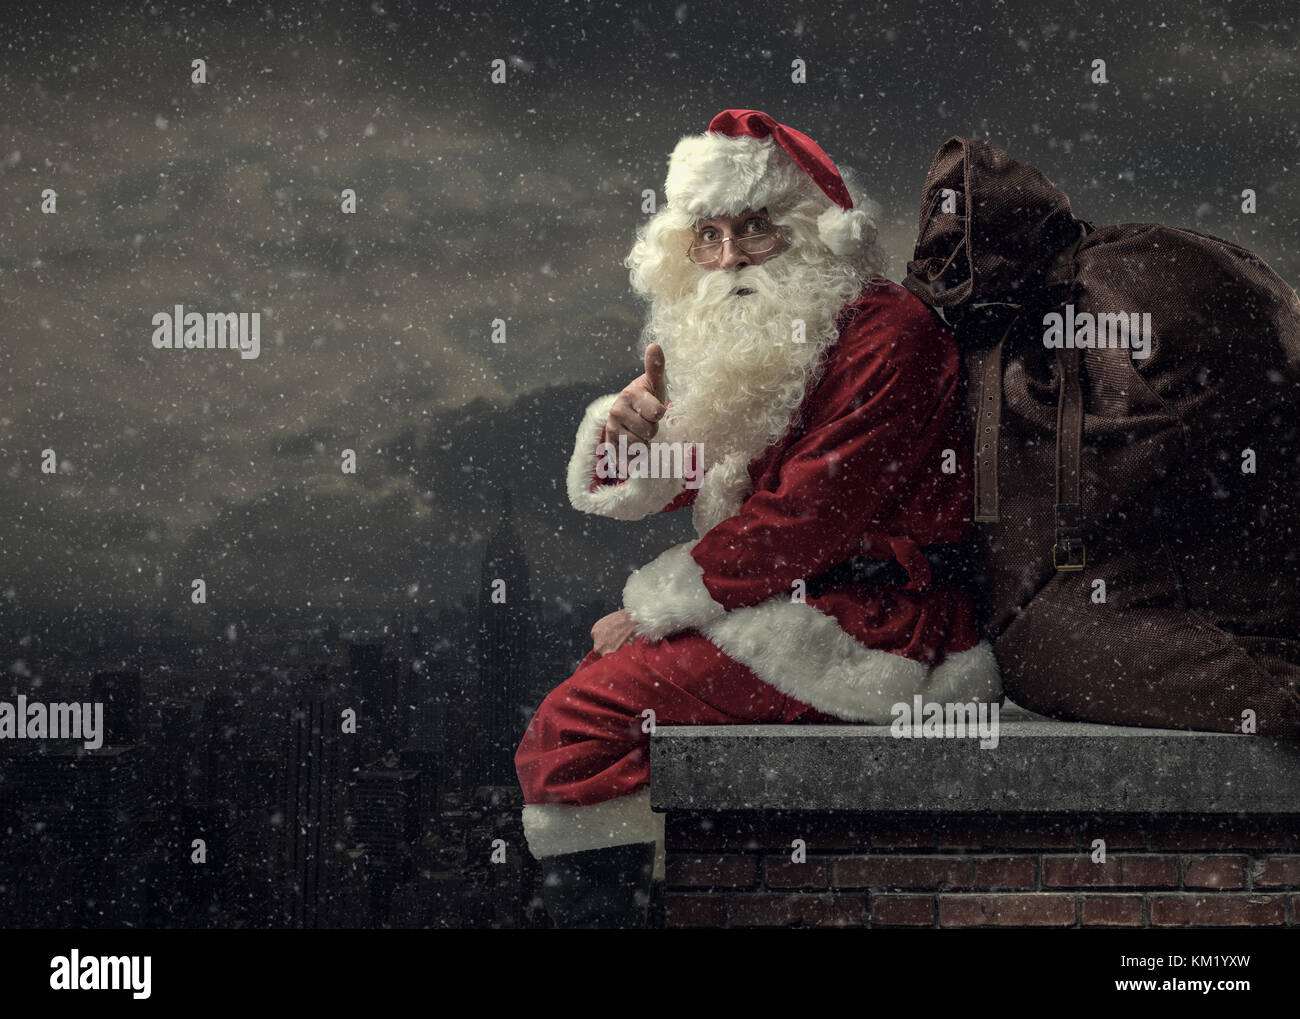 Happy Santa Claus bringing gifts on Christmas Eve: he is sitting on a roof, carrying a big sack and giving a thumbs - Stock Image